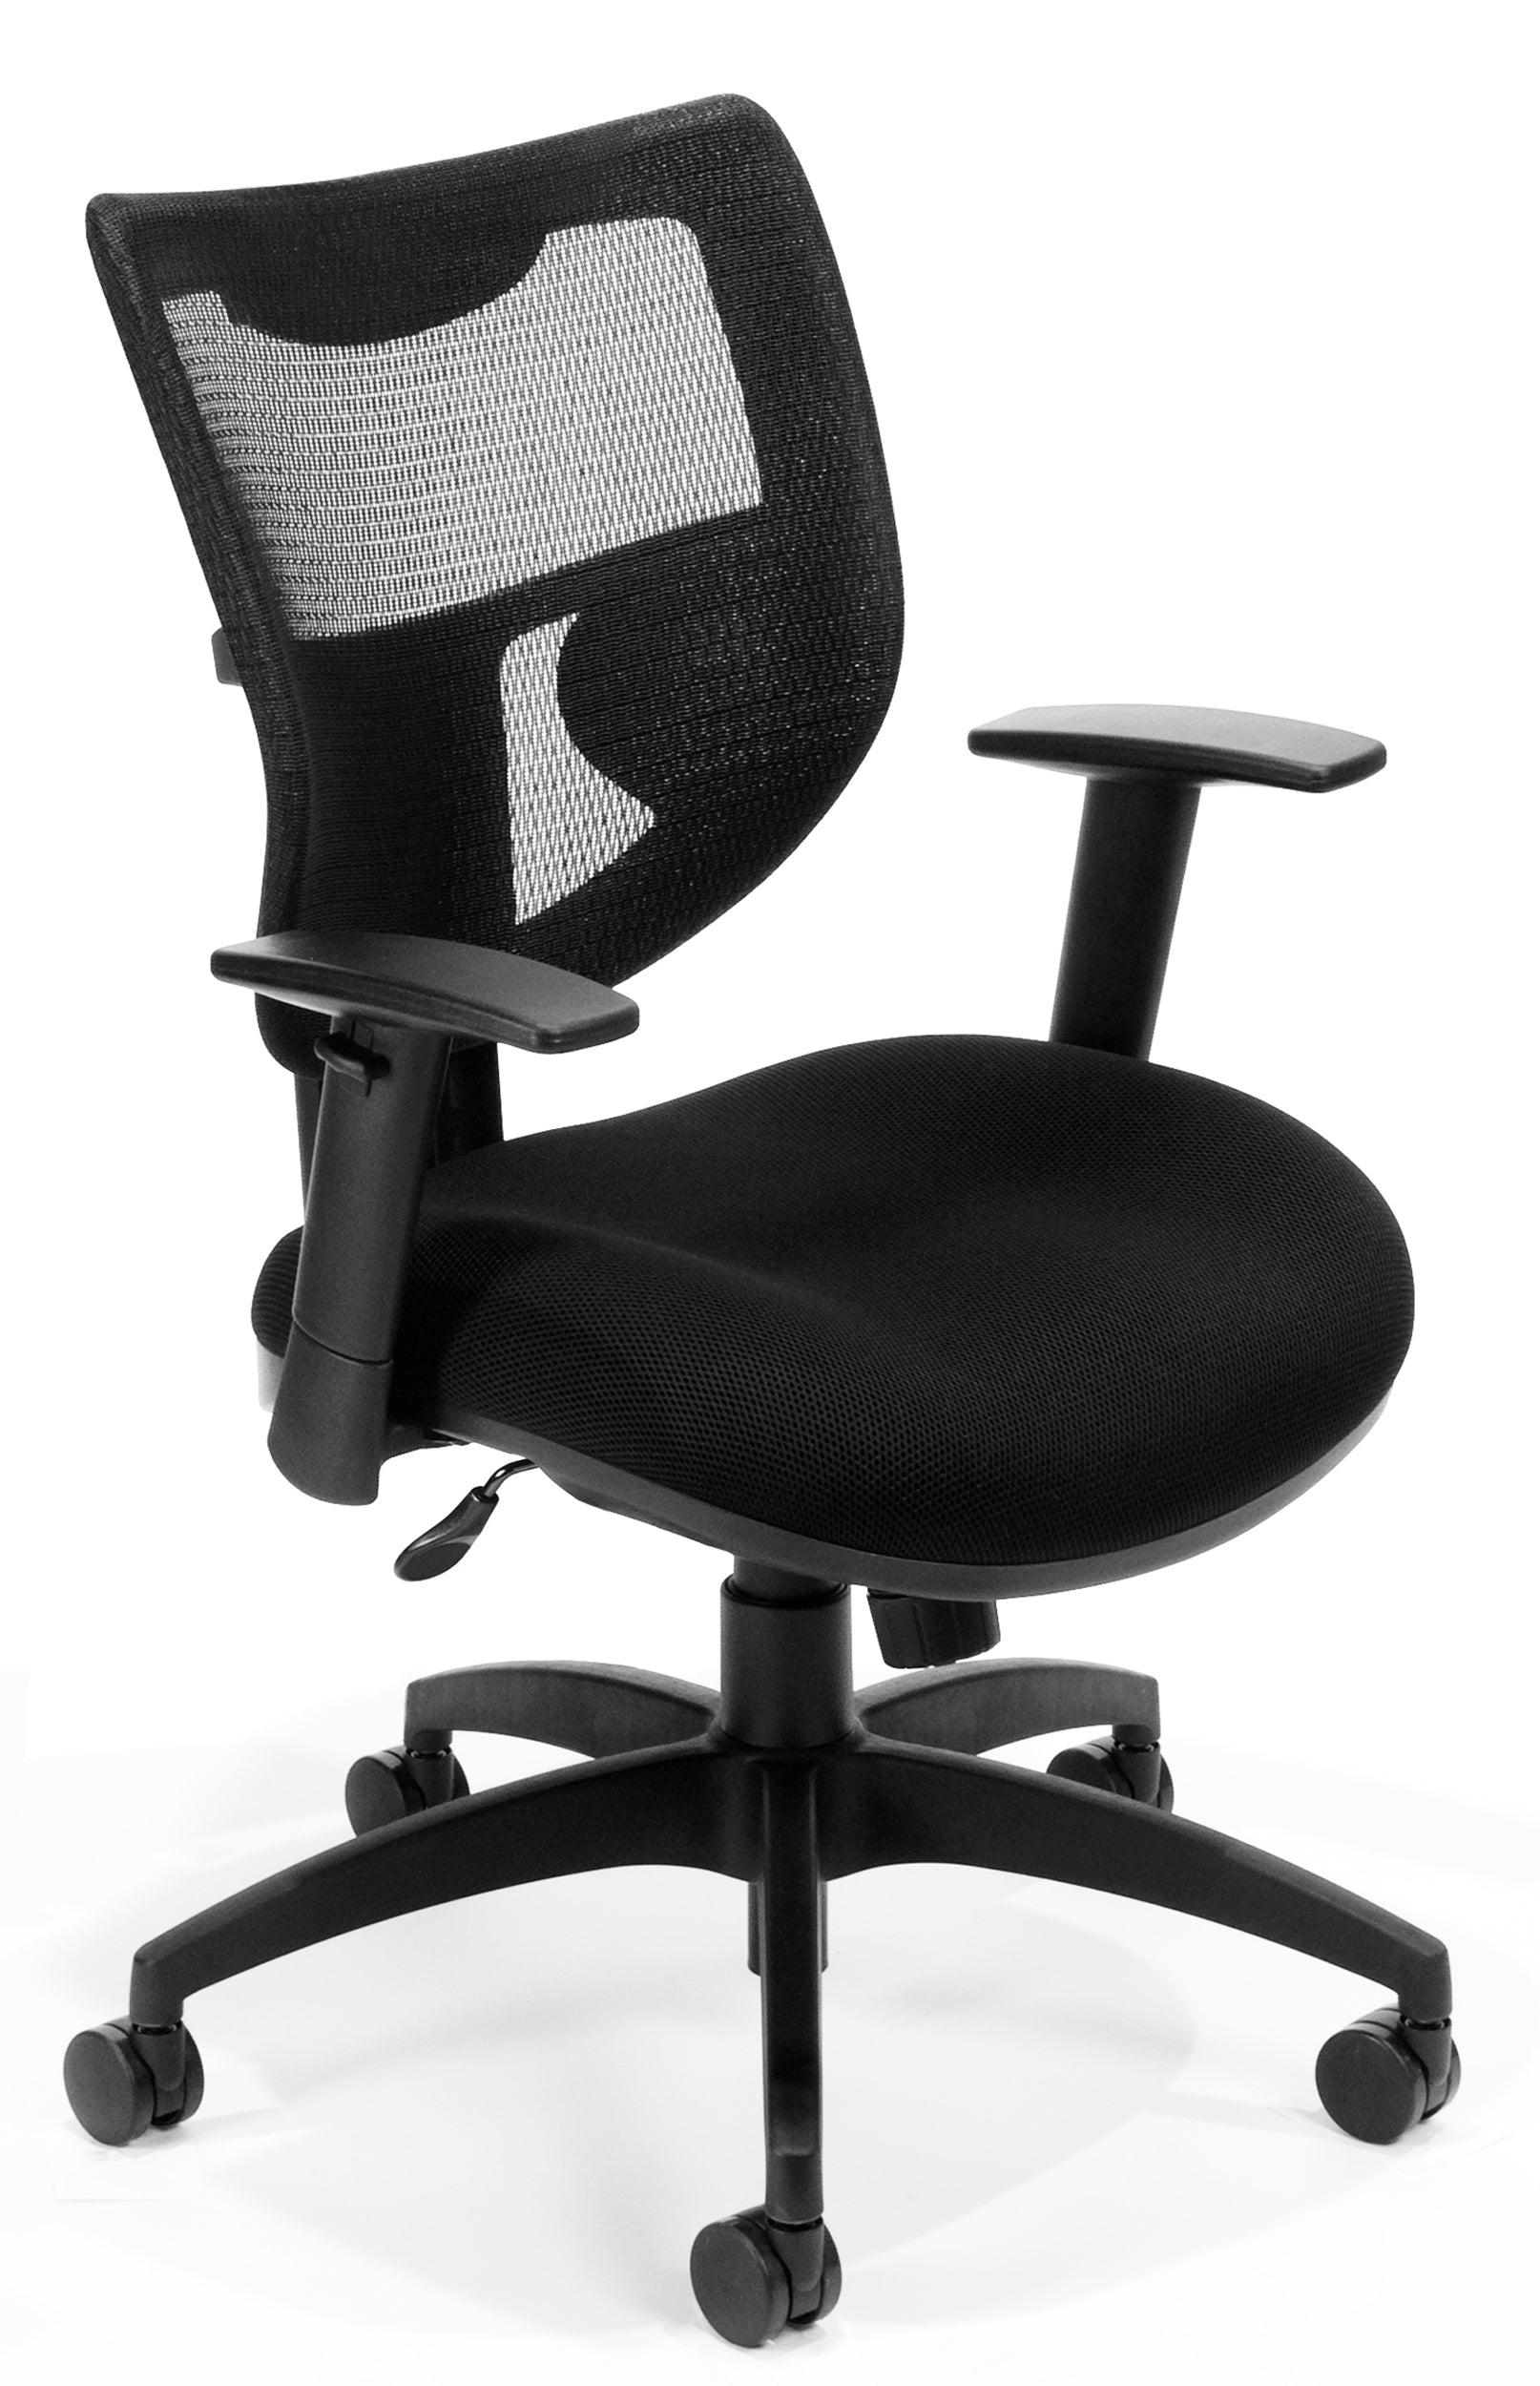 Ofminc Model 581 Parker Ridge Series Mesh Executive Task Chair